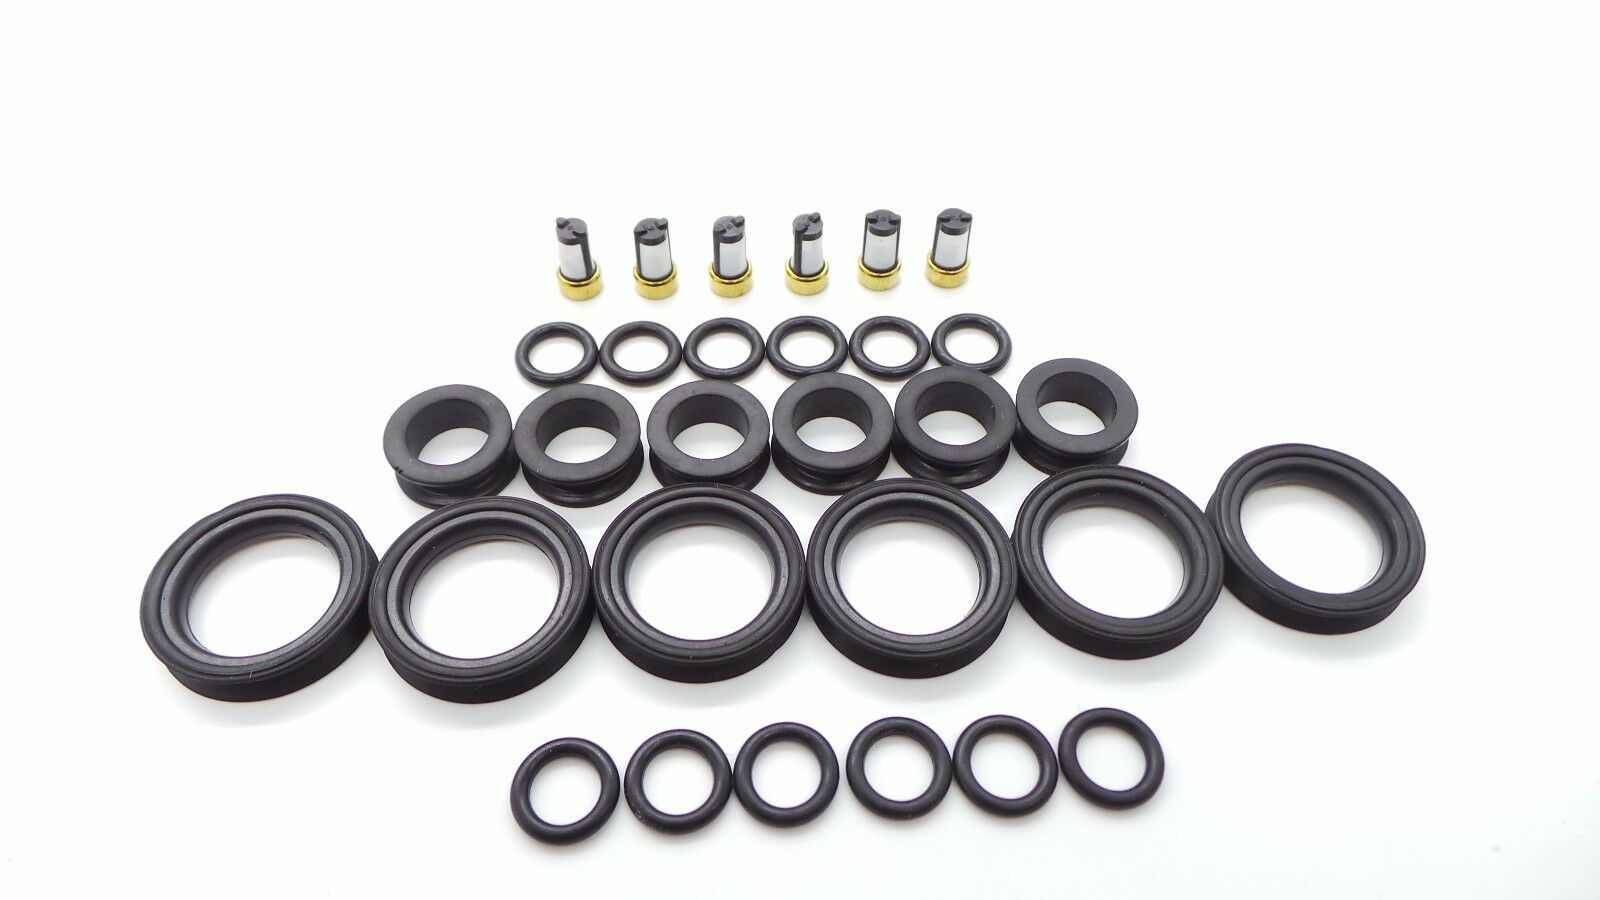 Toyota Lexus V6 Fuel Injector Repair Kit O Rings Grommets